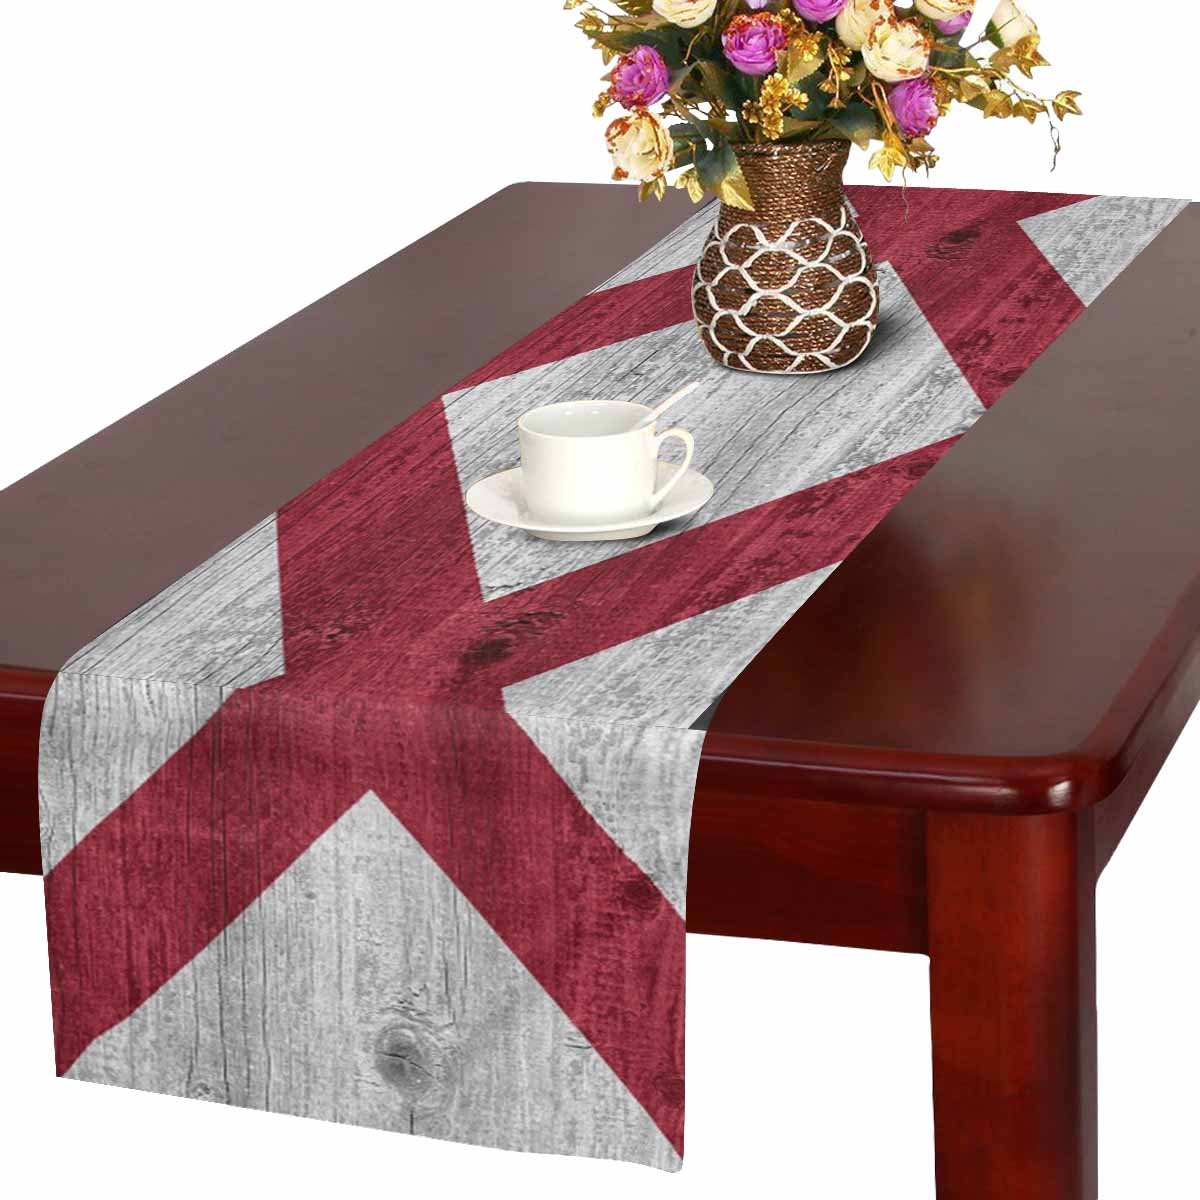 InterestPrint Flag of Alabama State (USA) on Wood Table Runner Linen & Cotton Cloth Placemat Home Decor for Kitchen Dining Wedding Party 16 x 72 Inches